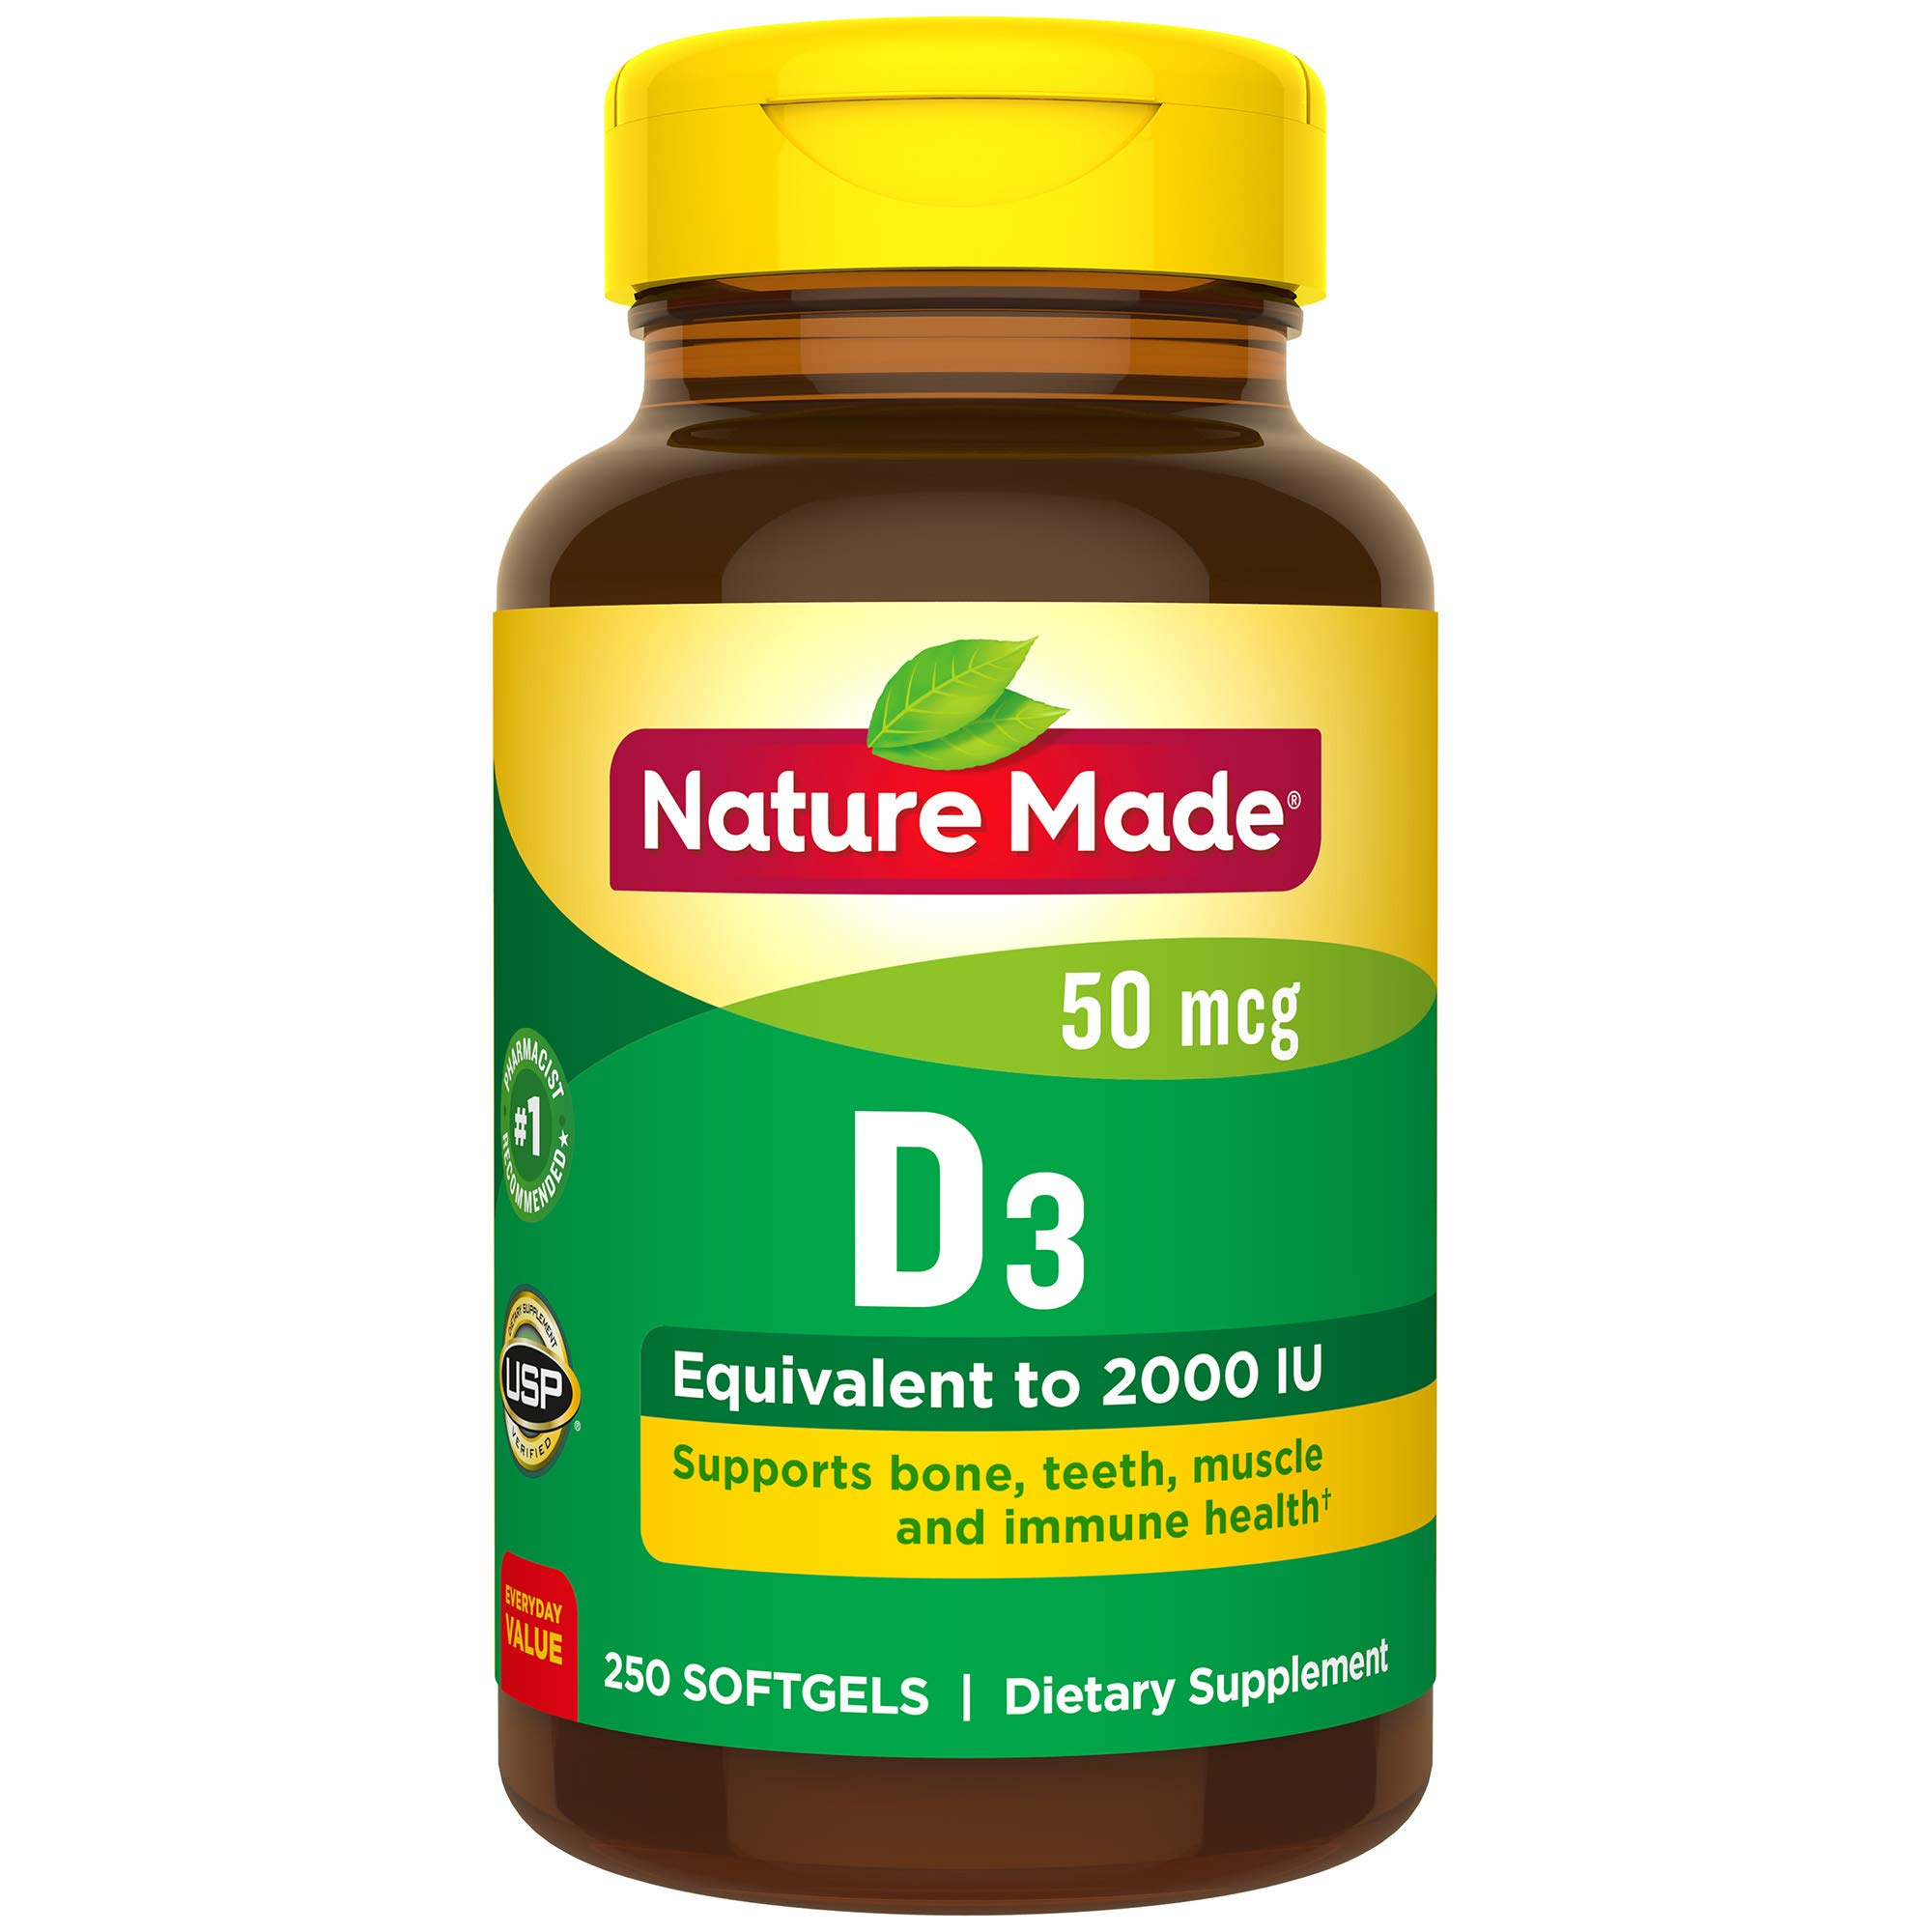 Nature Made Vitamin D 50 mcg (2000 IU) Softgels, 250 Count Everyday Value Size for Bone Health (Packaging May Vary) by Nature Made